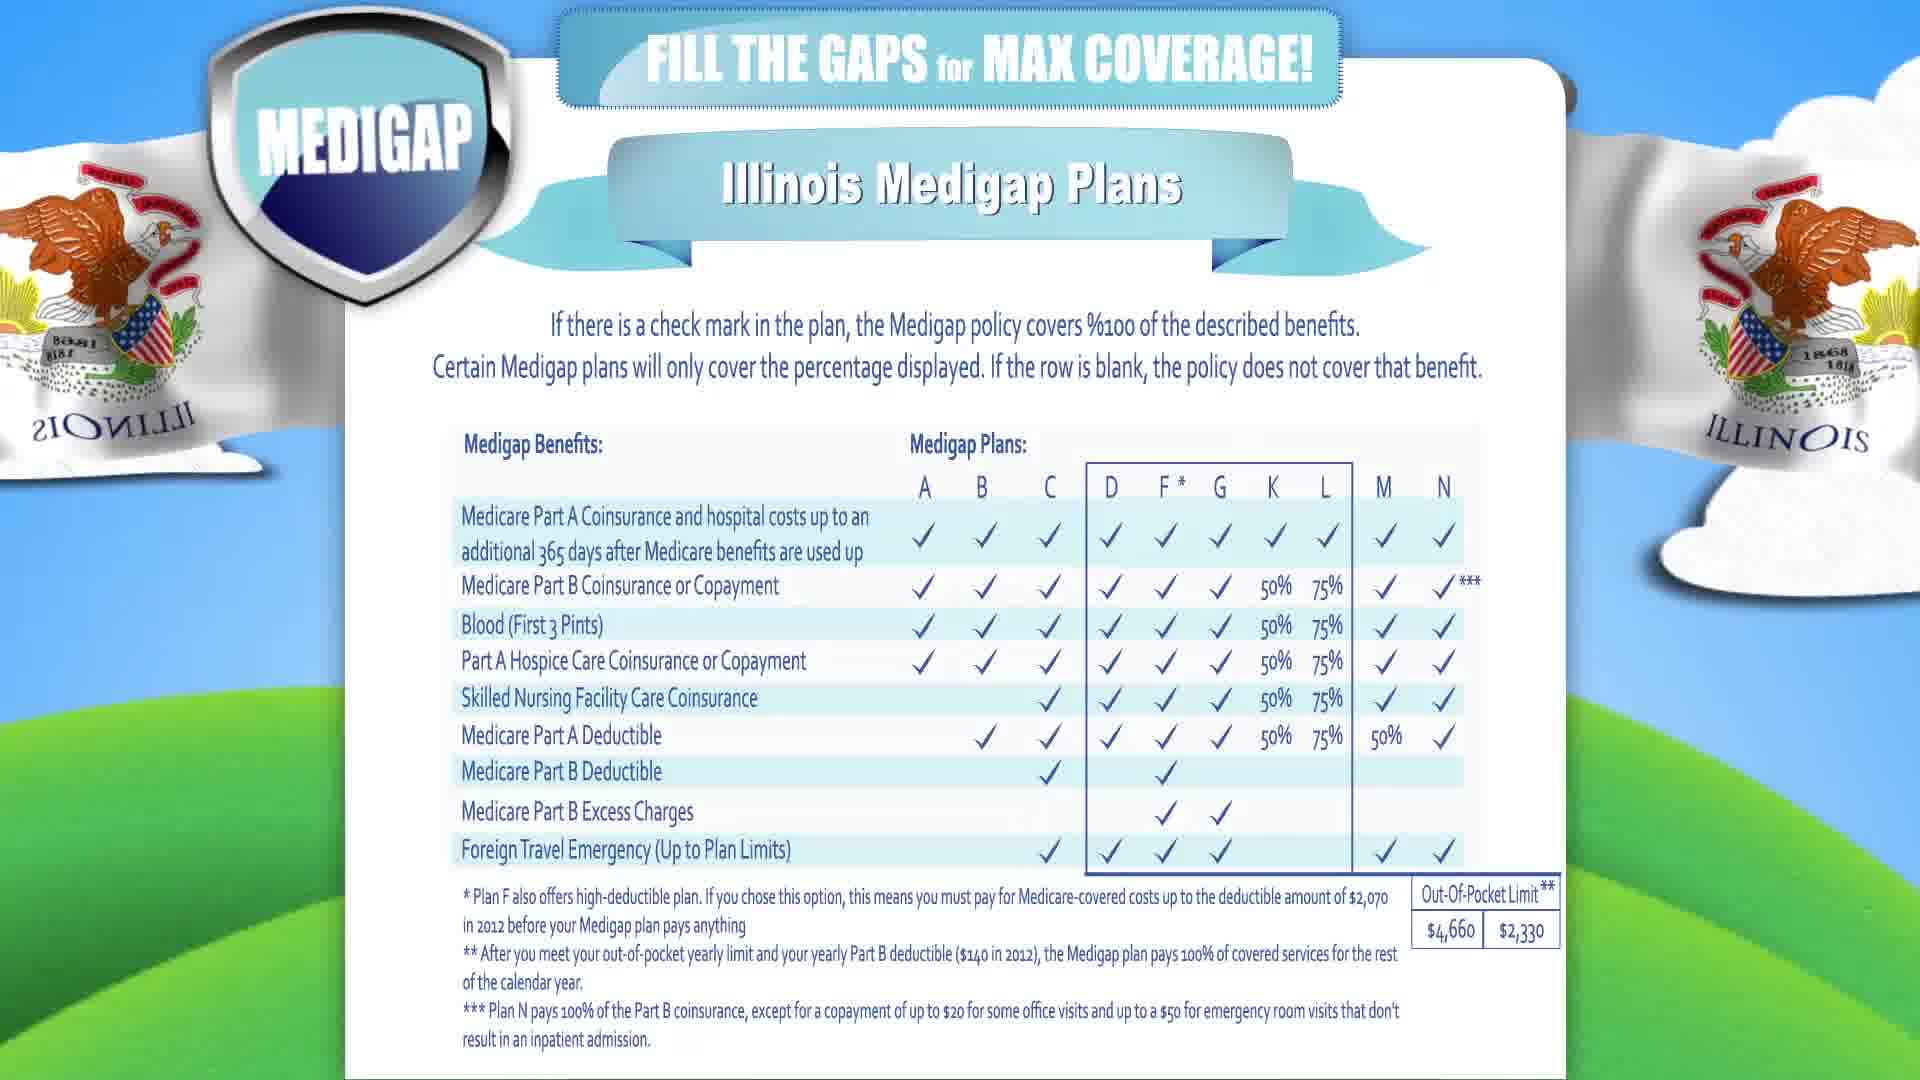 Medicare in Illinois